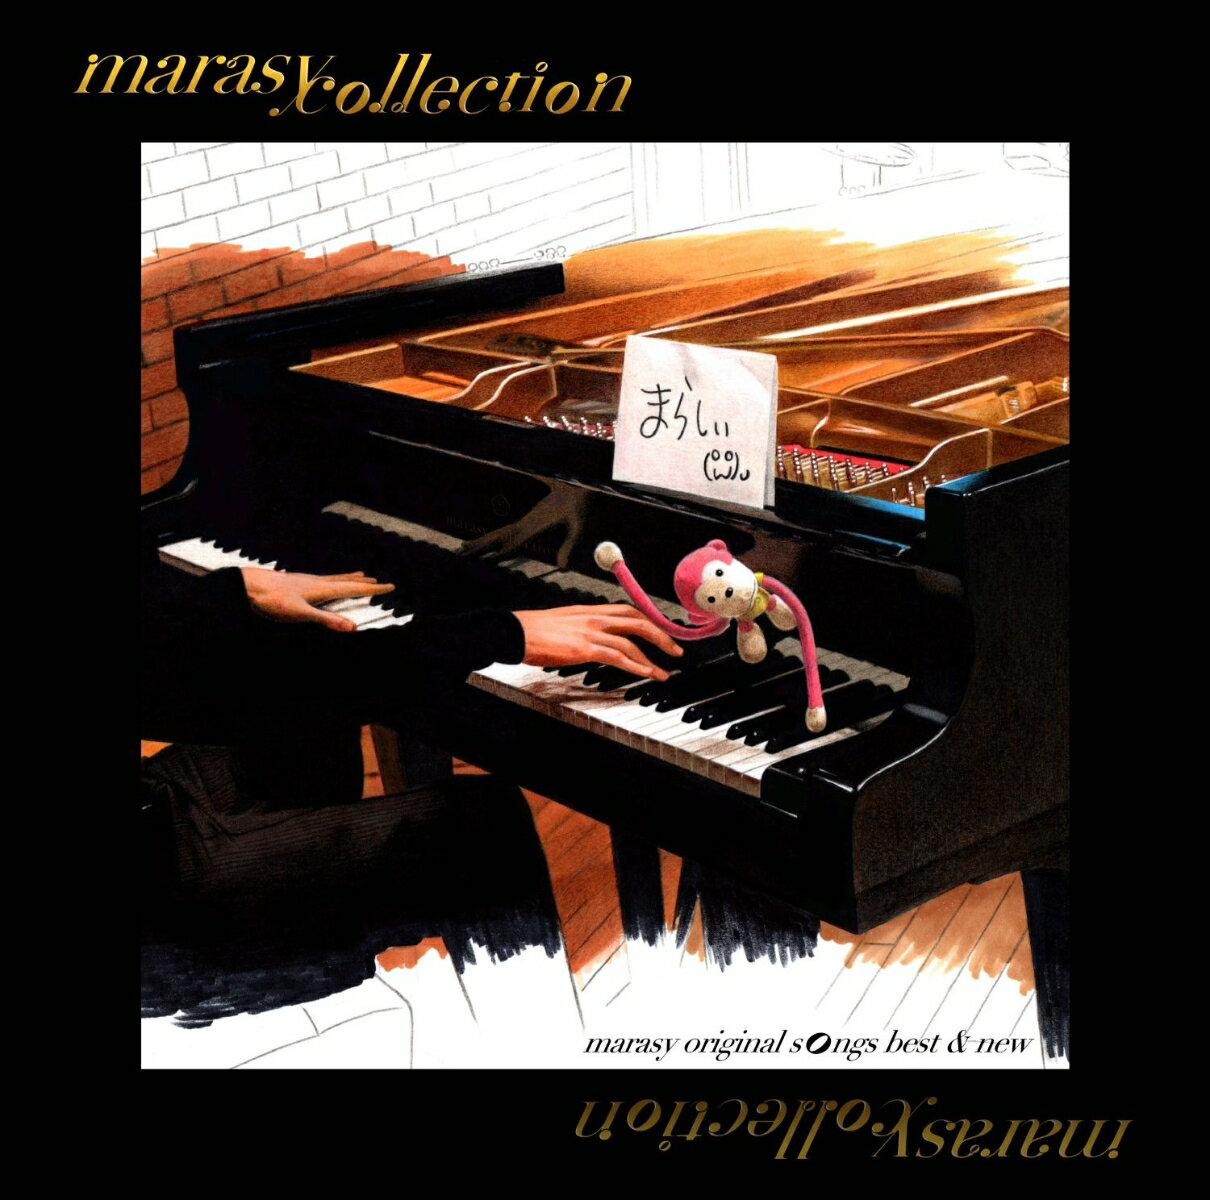 【先着特典】marasy collection 〜marasy original songs best & new〜 (特典DVD付き) [ まらしぃ(marasy) ]